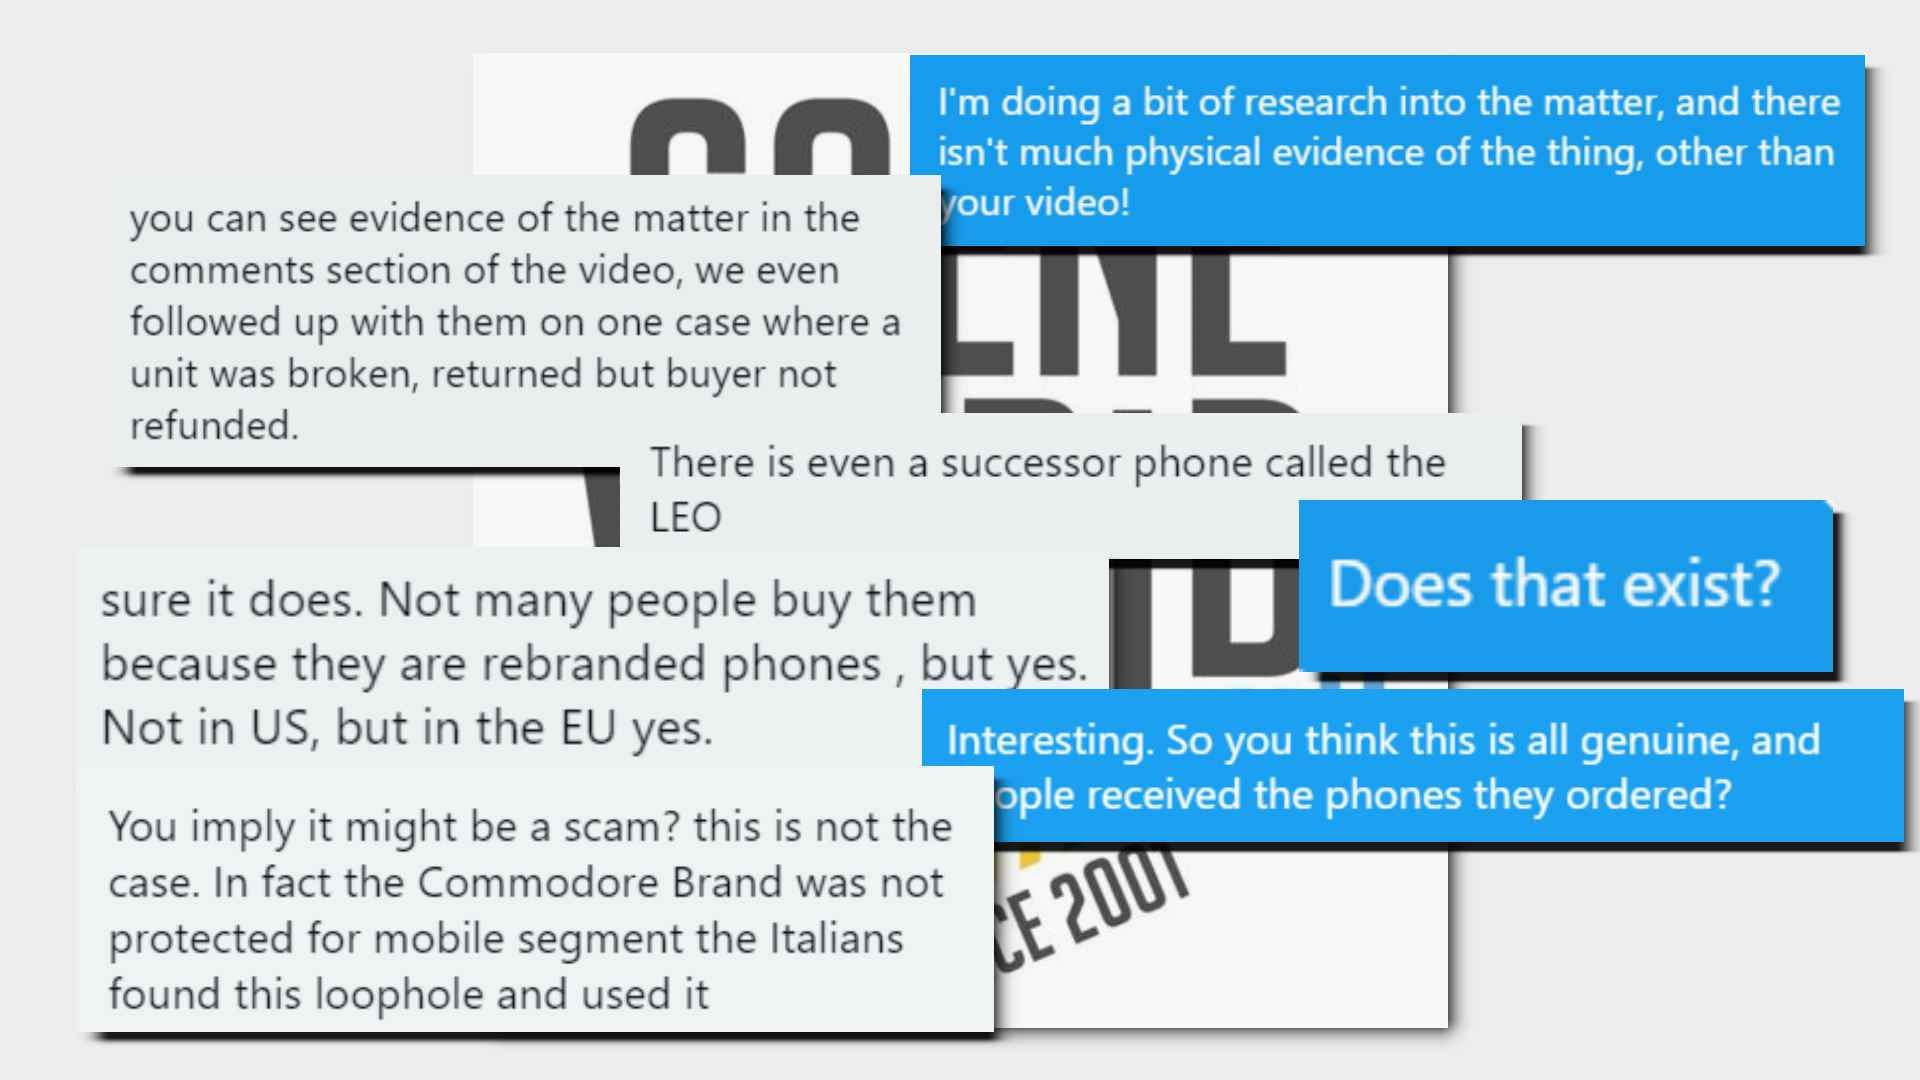 Conversation with Scene World where they said they believed it was a legitimate operation